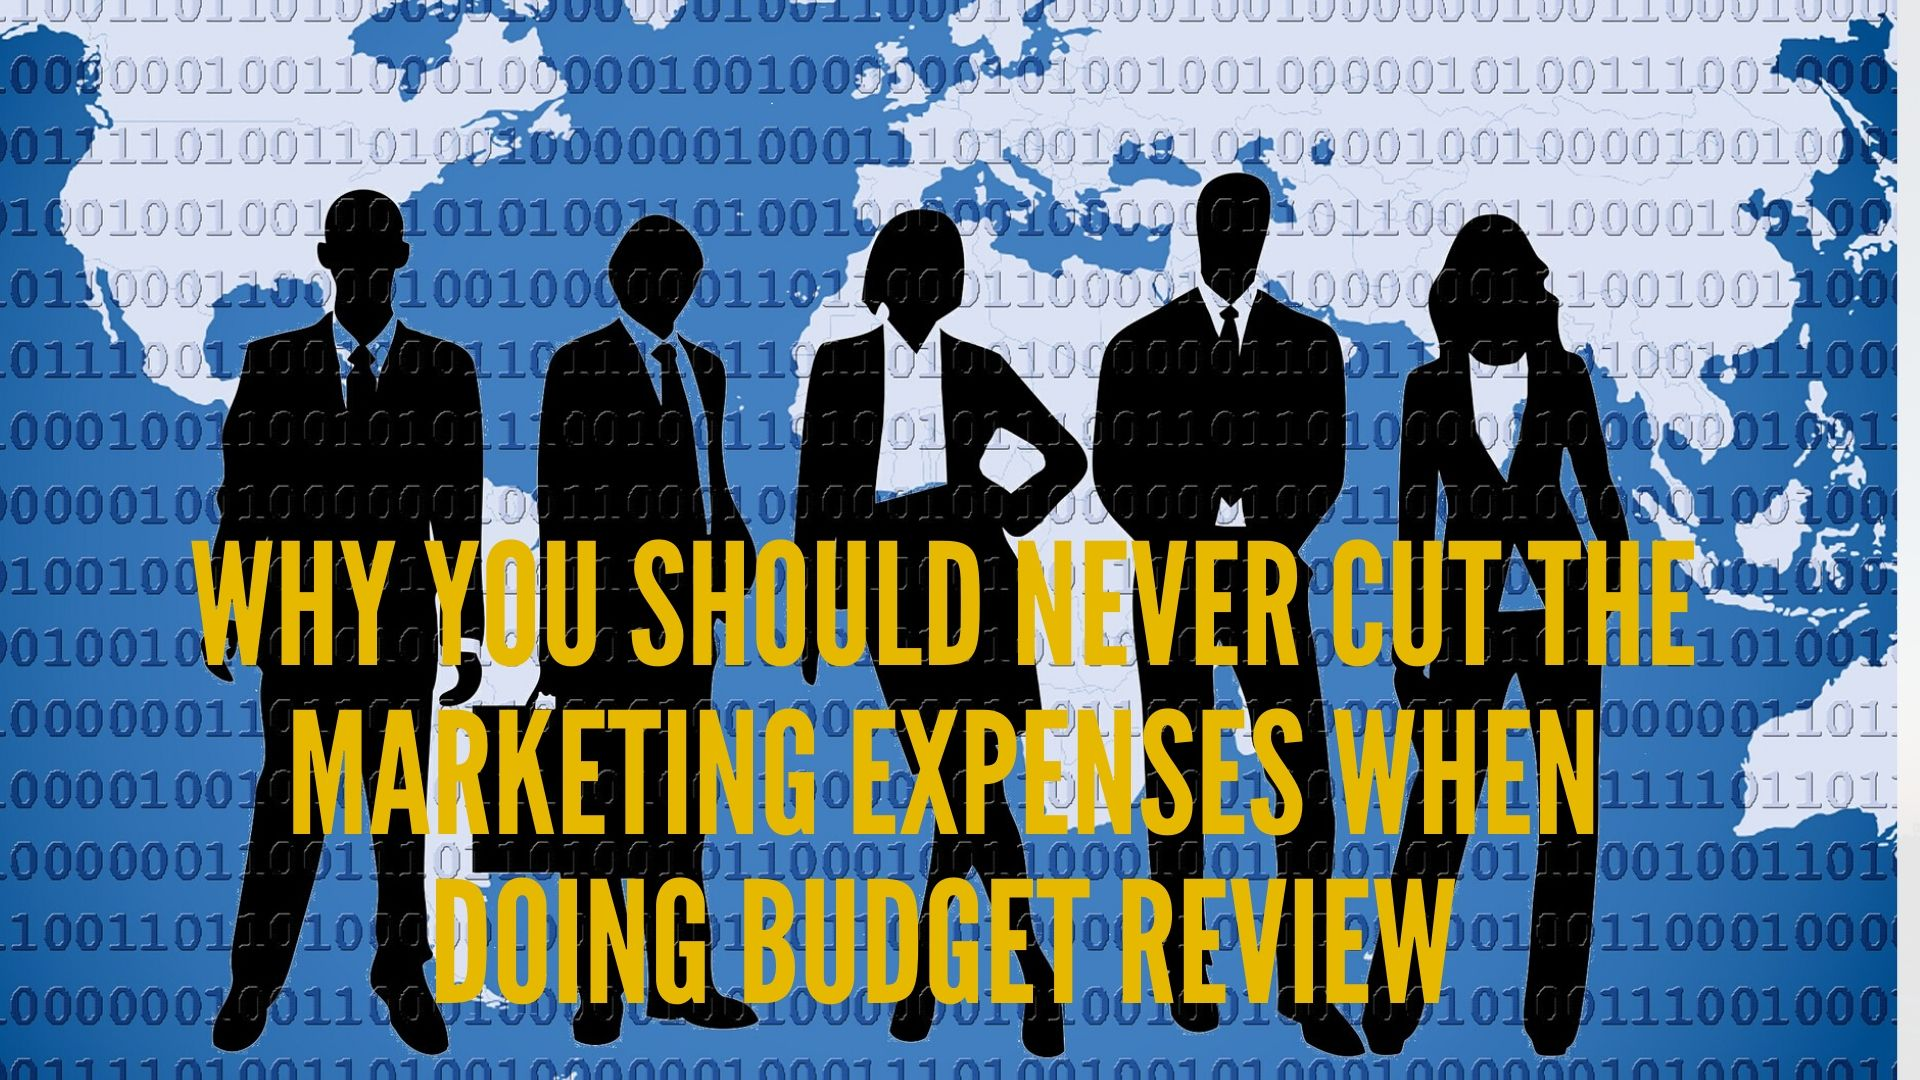 Why you should never cut the marketing expenses when doing budget review